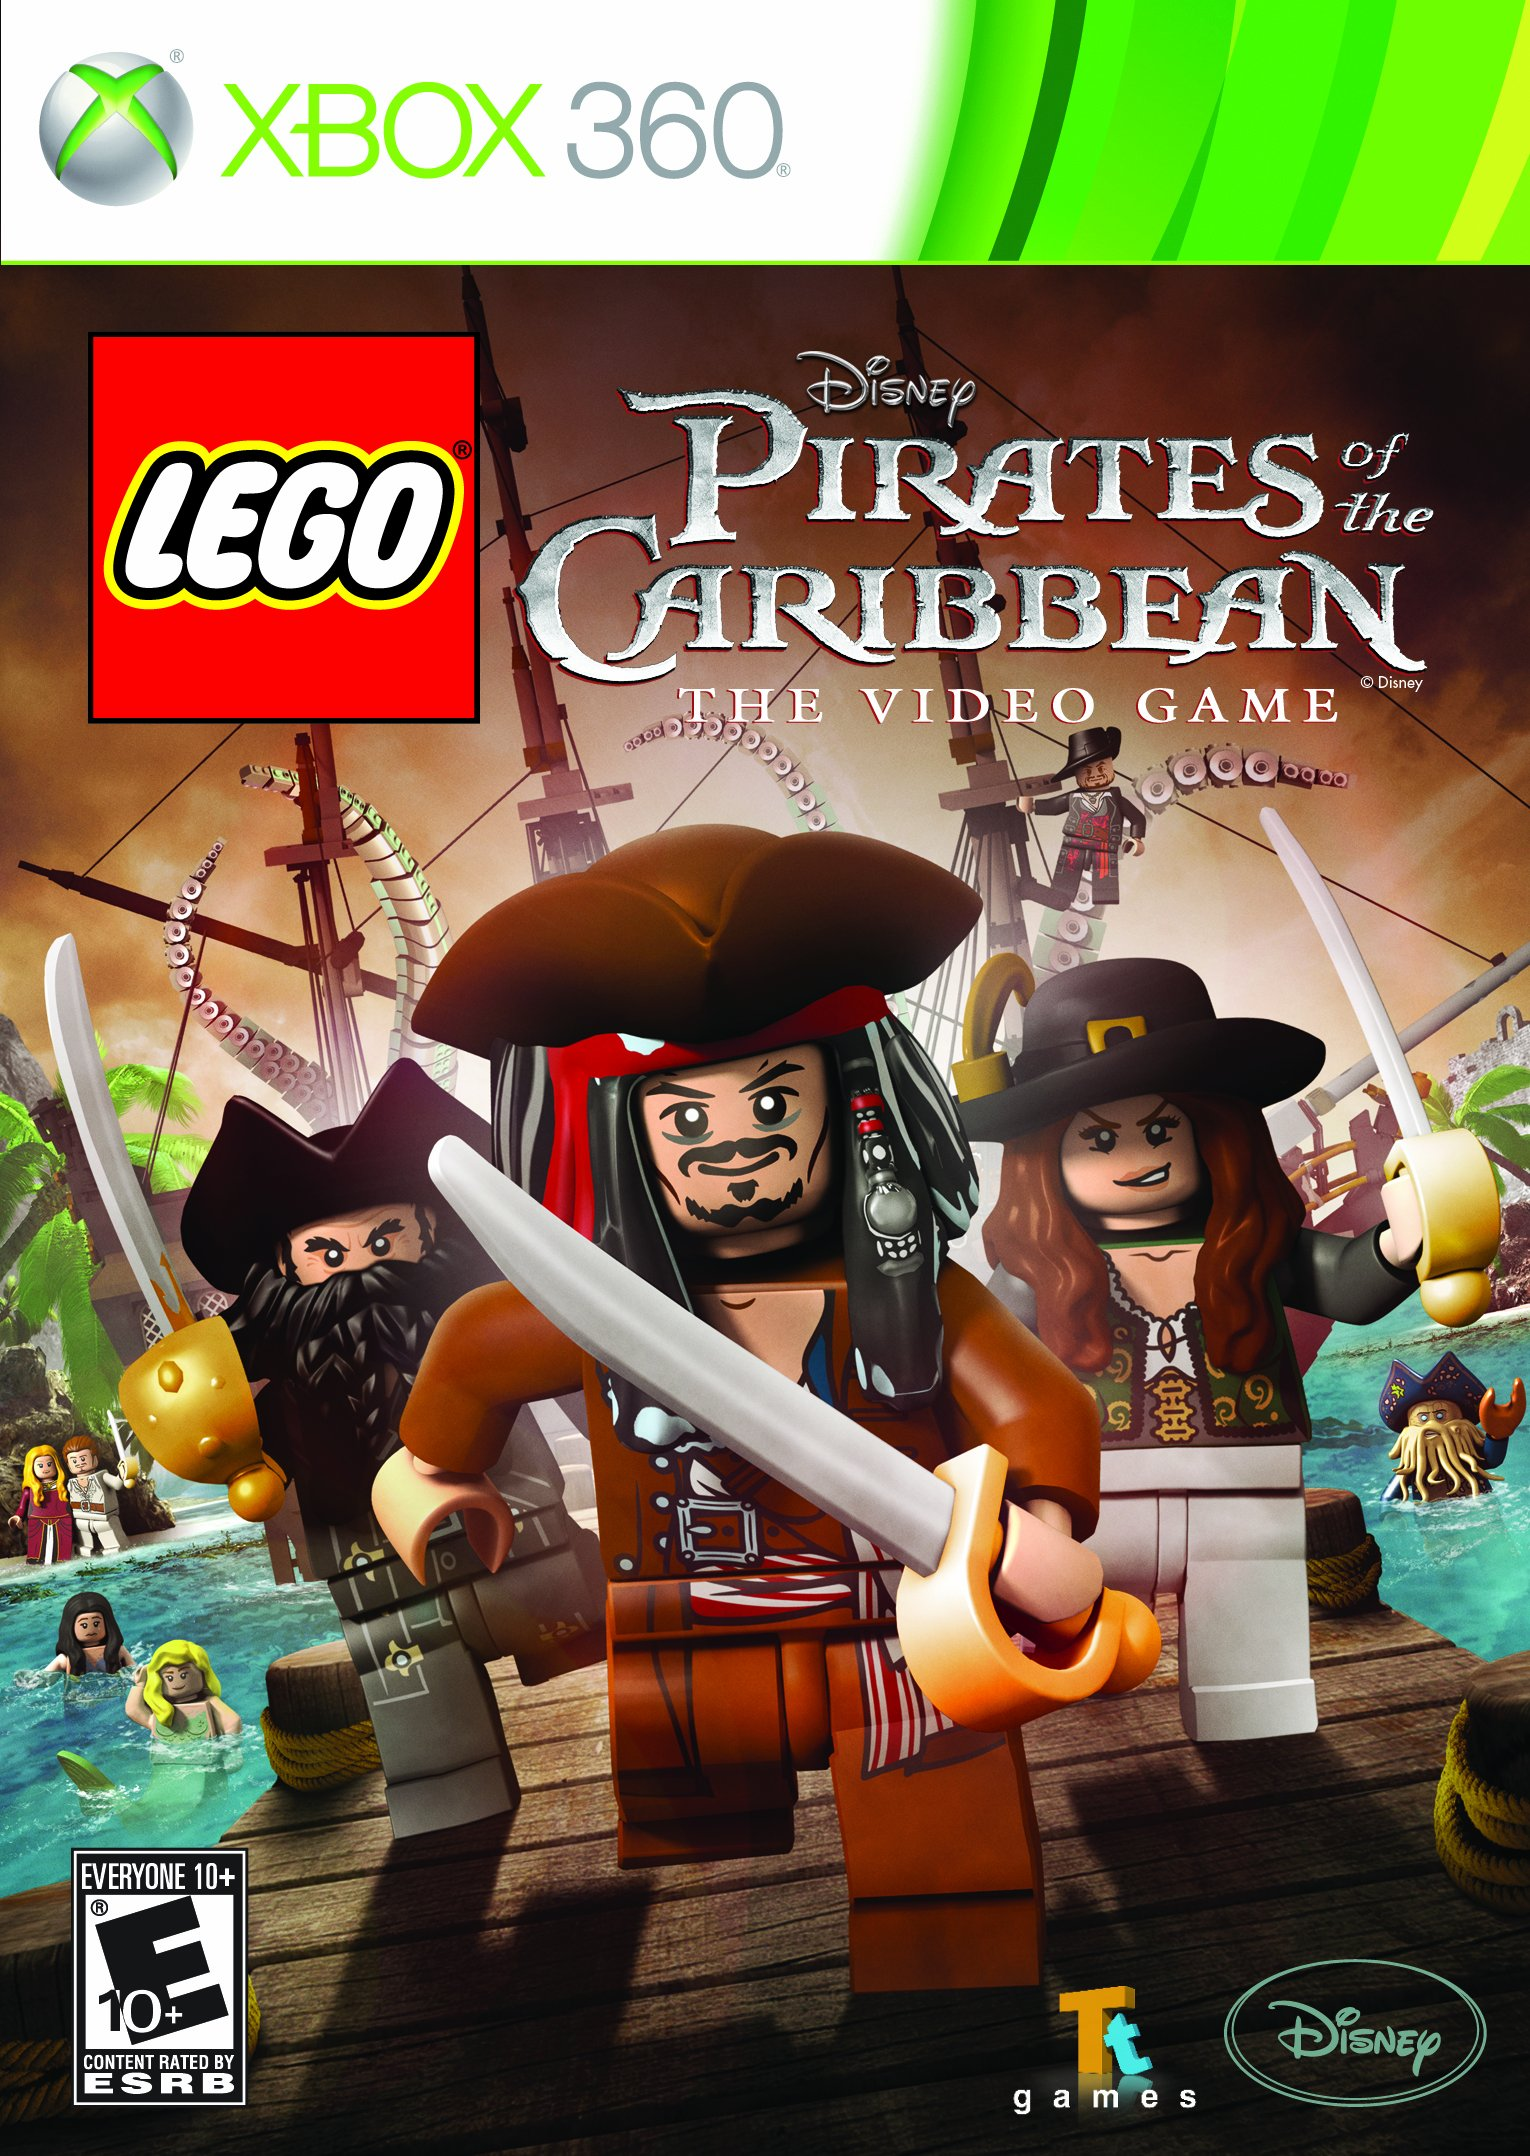 LEGO Pirates of the Caribbean - Xbox 360 by Disney Interactive Studios (Image #1)